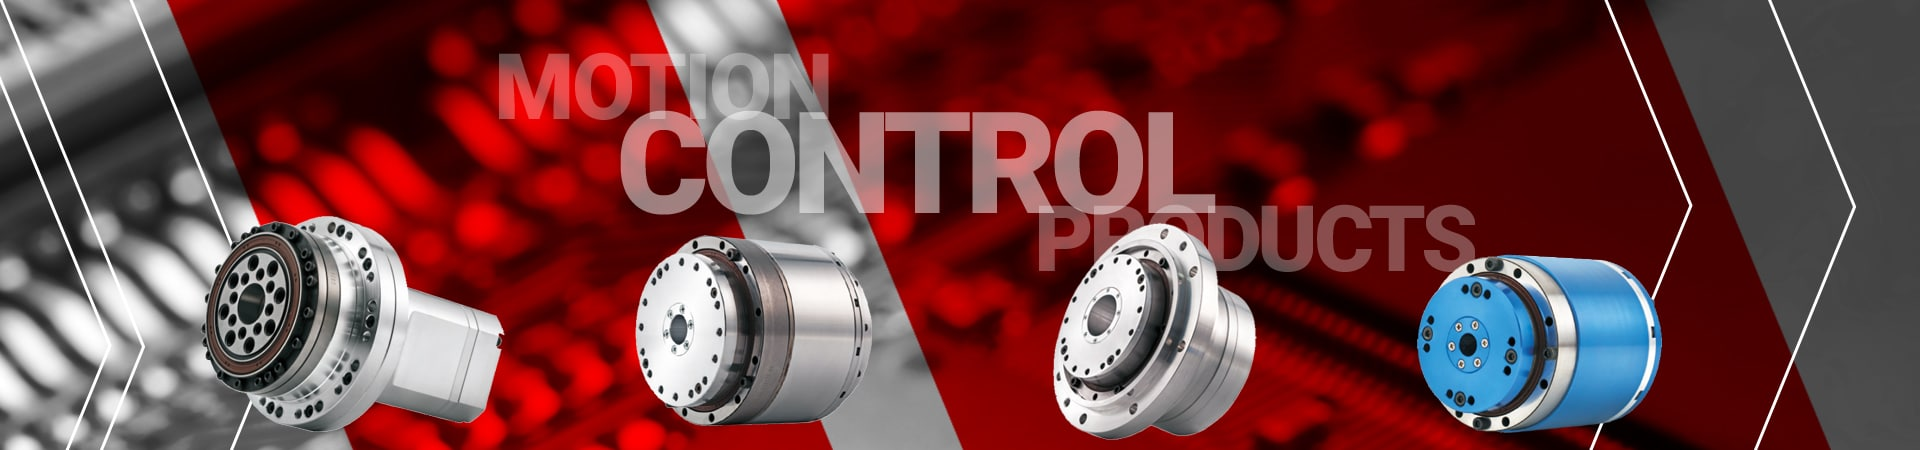 harmonic gear motors background